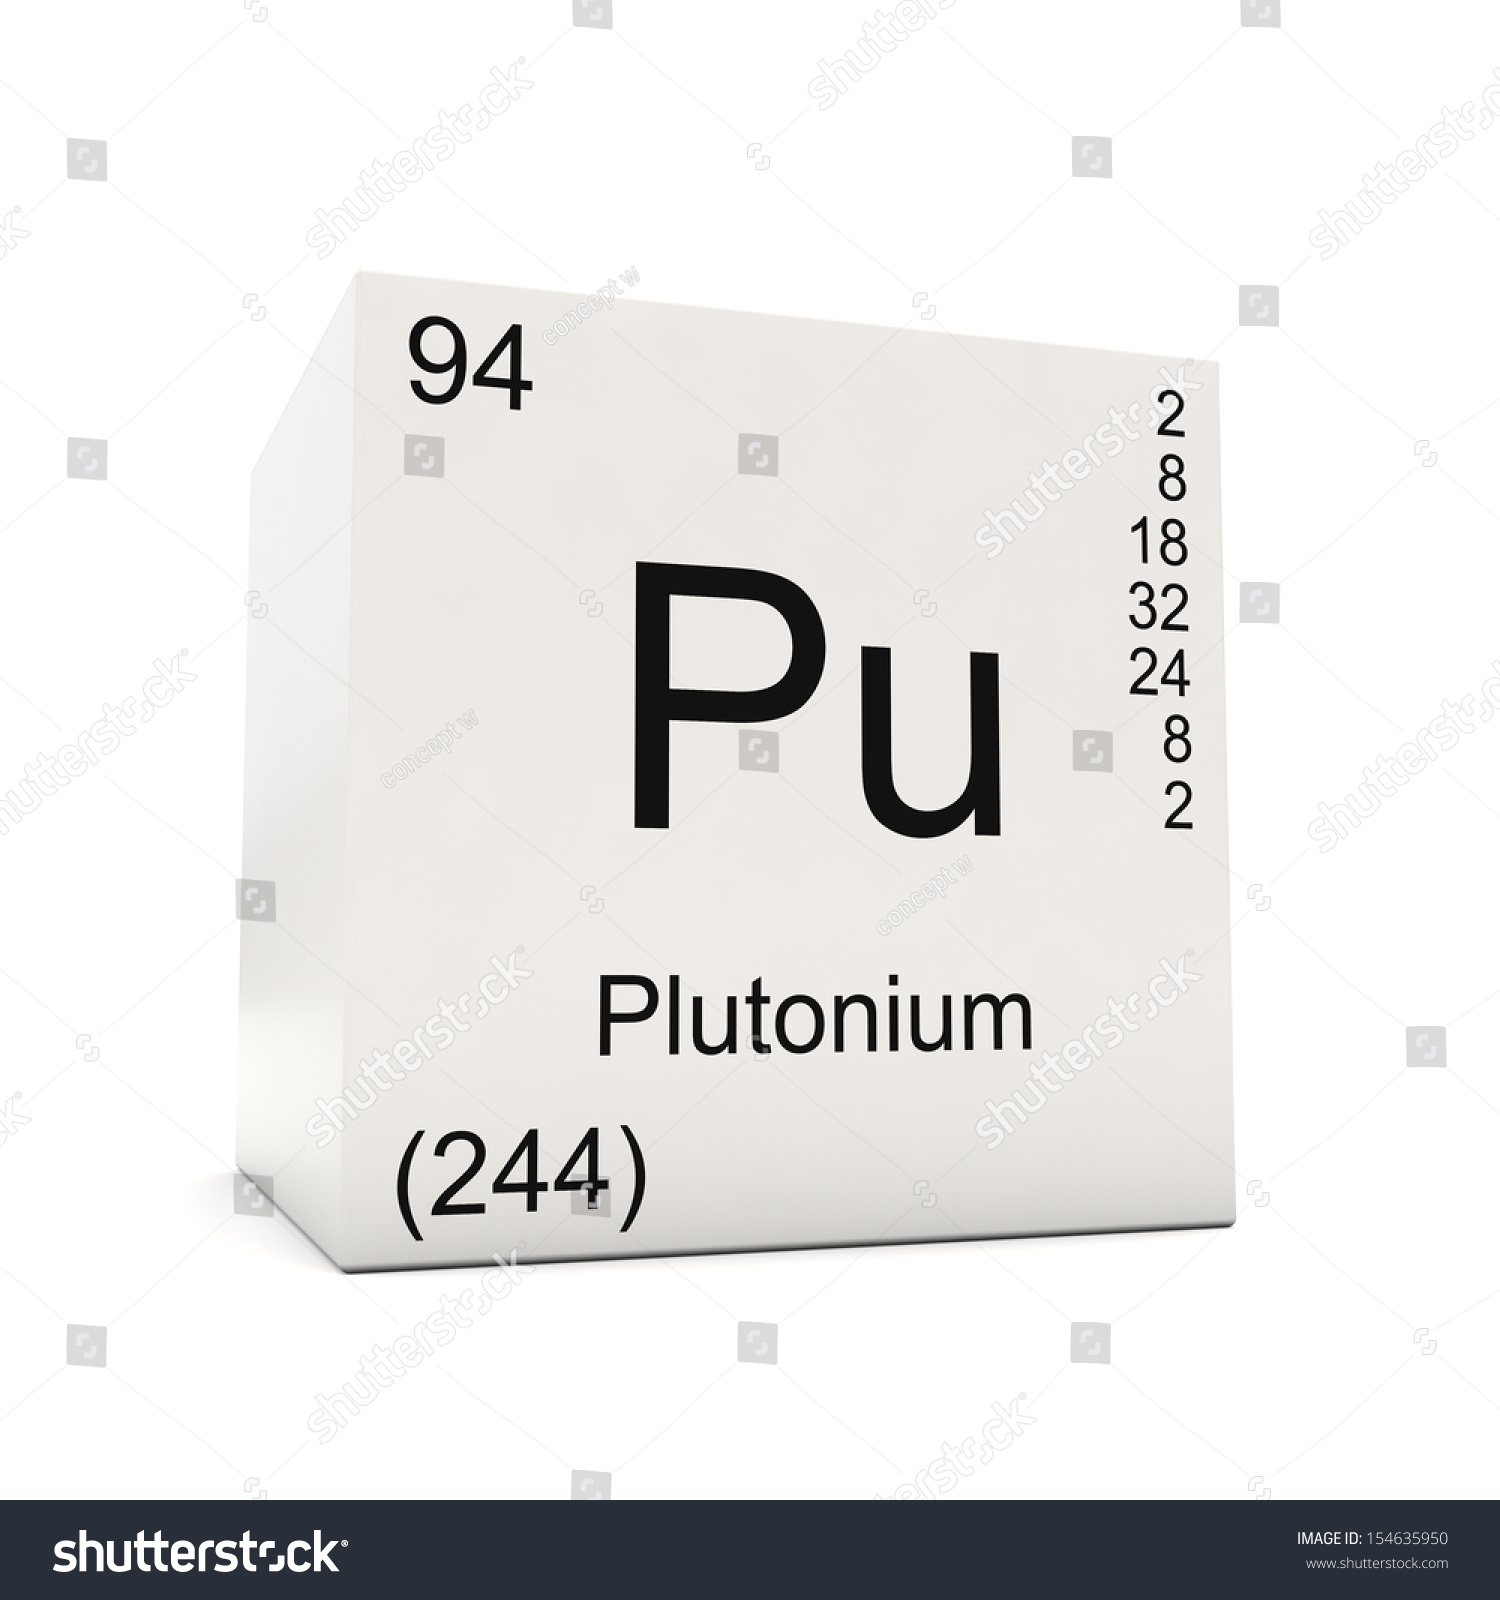 14th element in periodic table image collections periodic table 14th element in periodic table choice image periodic table images where is plutonium on the periodic gamestrikefo Gallery